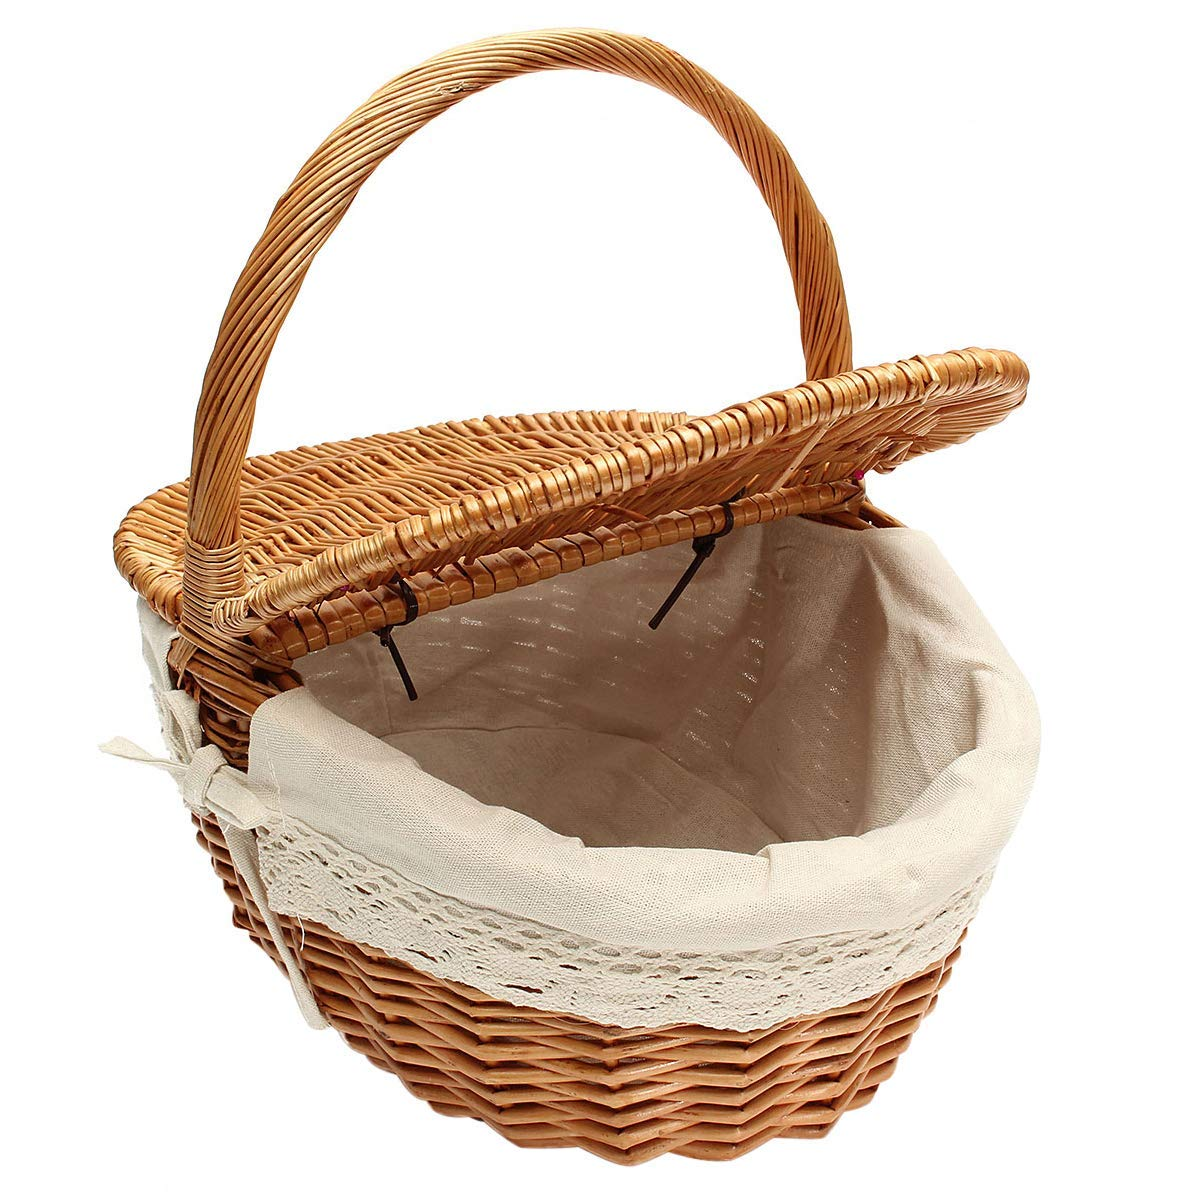 UBEDA Wicker Willow Picnic Basket Hamper Shopping Basket with Lid and Handle and White Liner for Camping